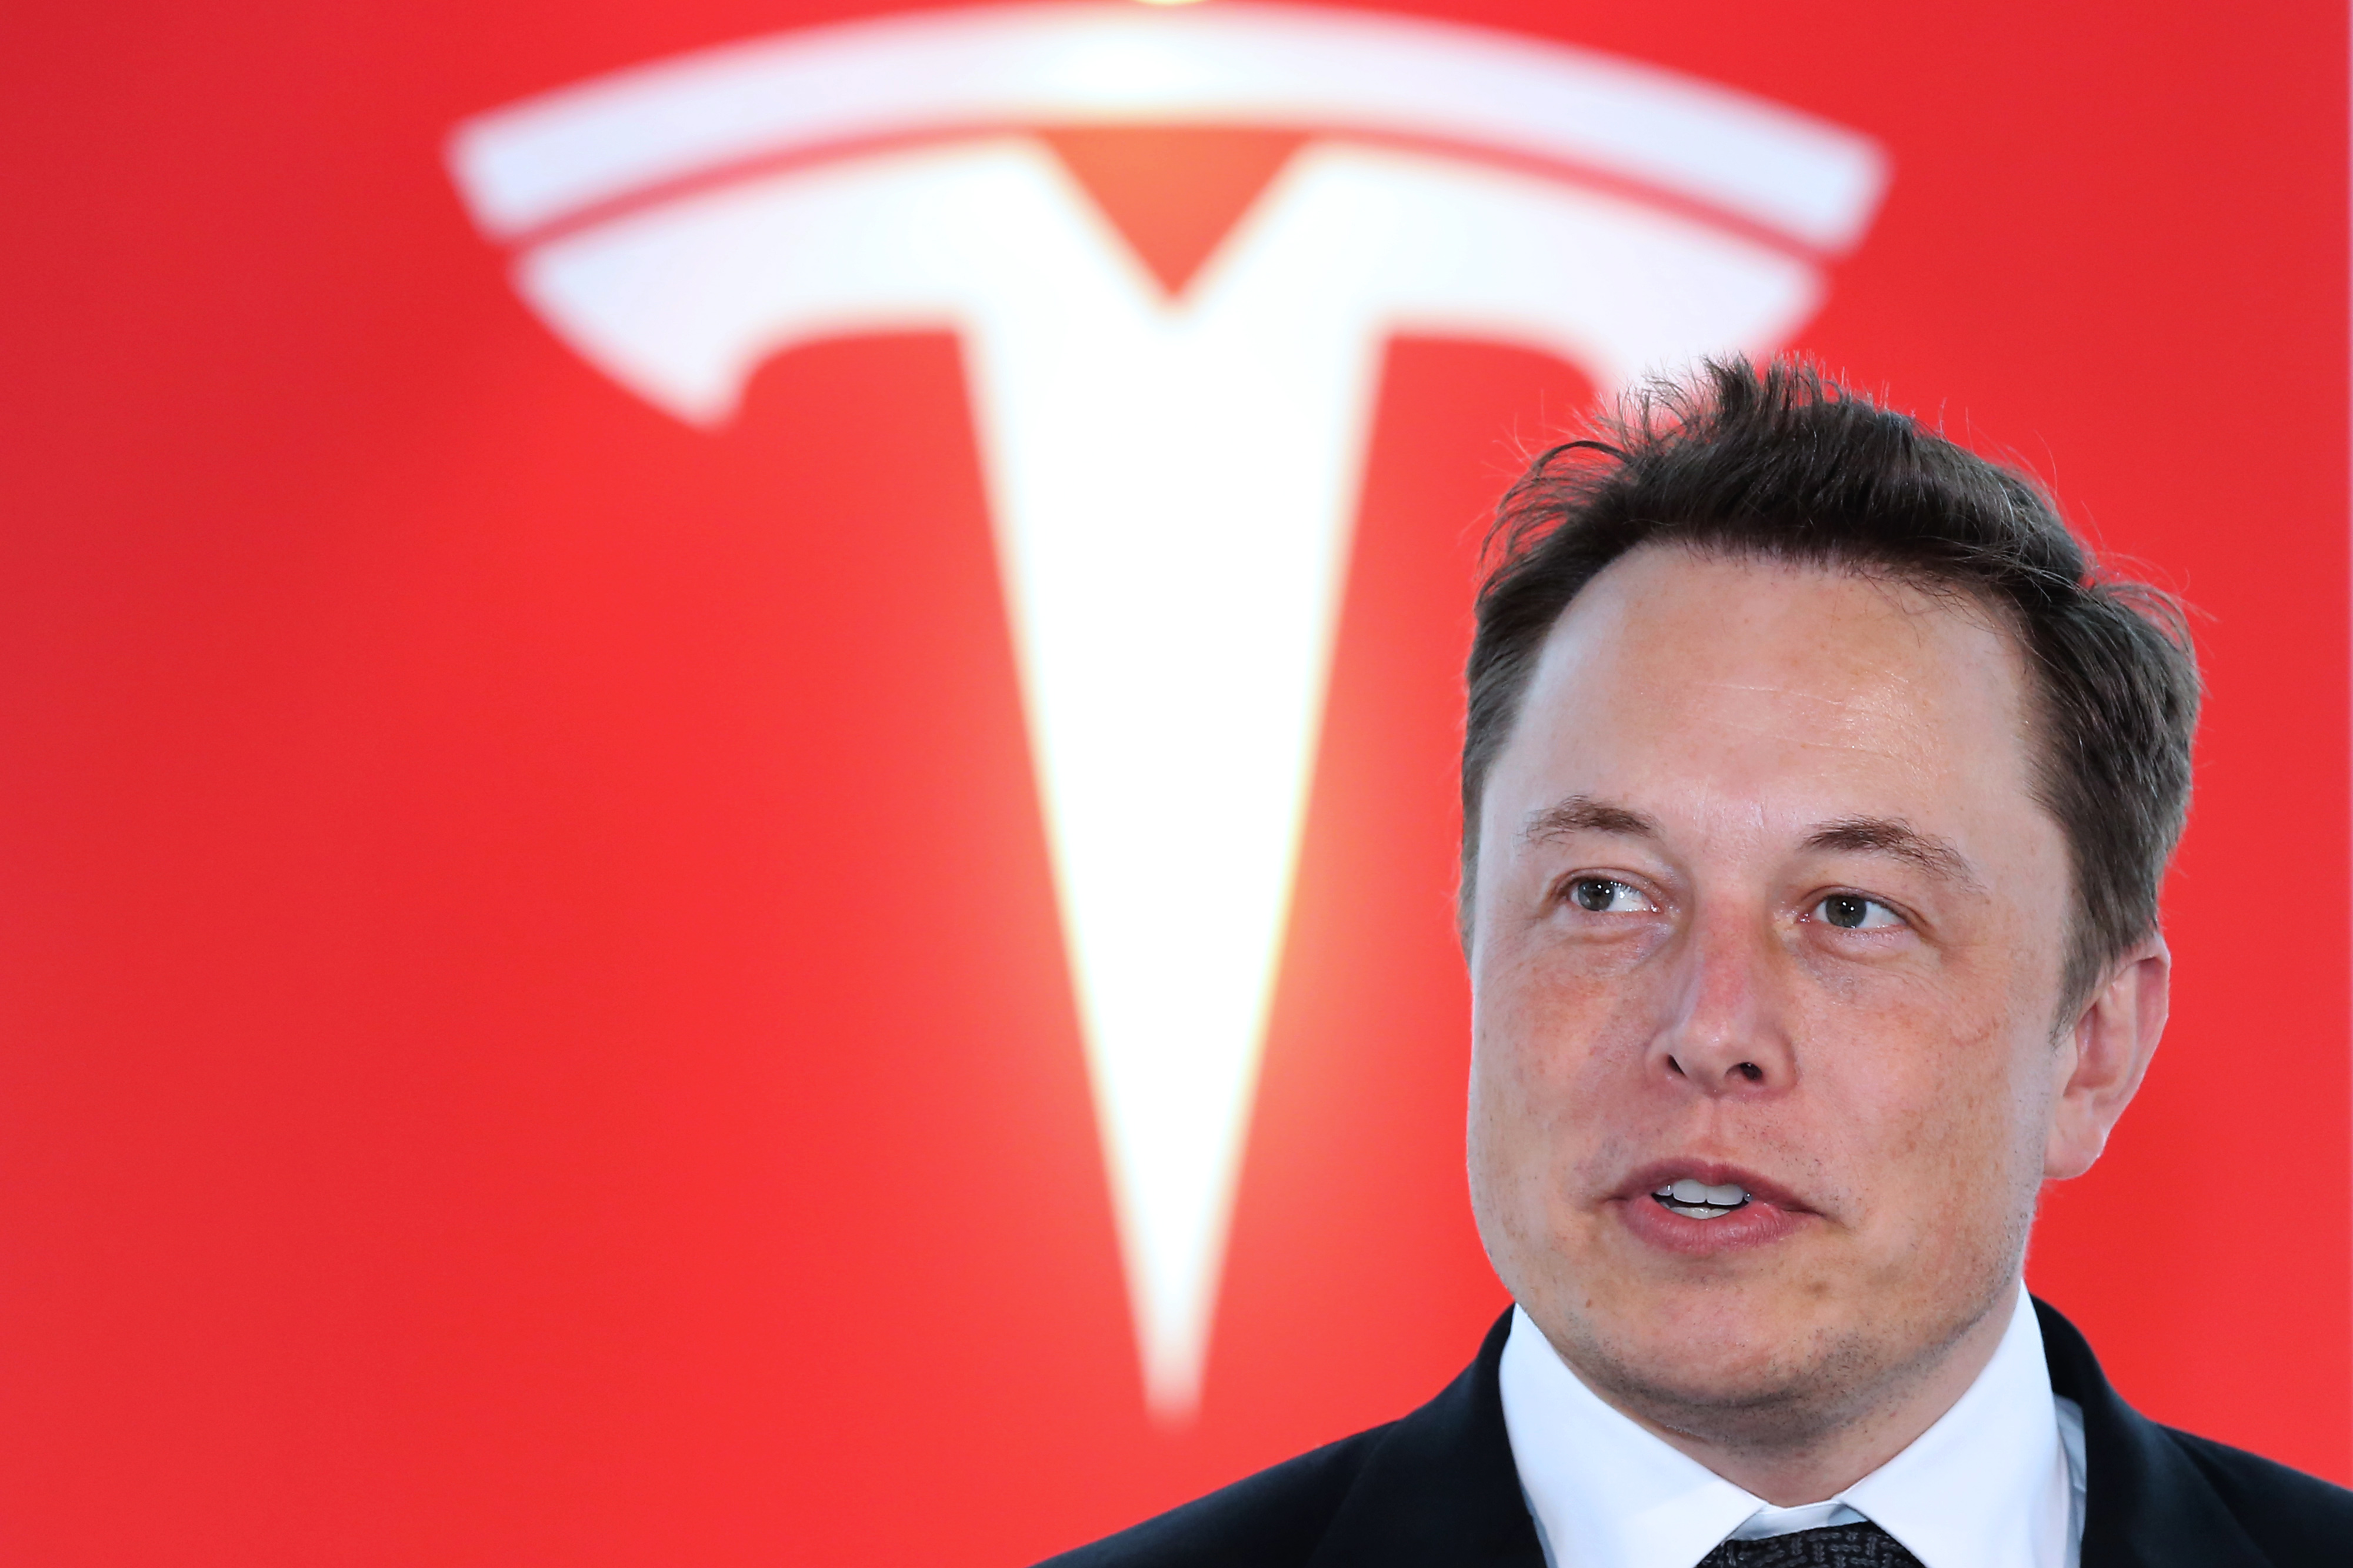 Elon Musk, co-founder and chief executive officer of Tesla Motors Inc., attends a key delivery ceremony of the company's premium electric sedan Model S vehicles to customers in Tokyo, Japan, on Monday, Sept. 8, 2014.